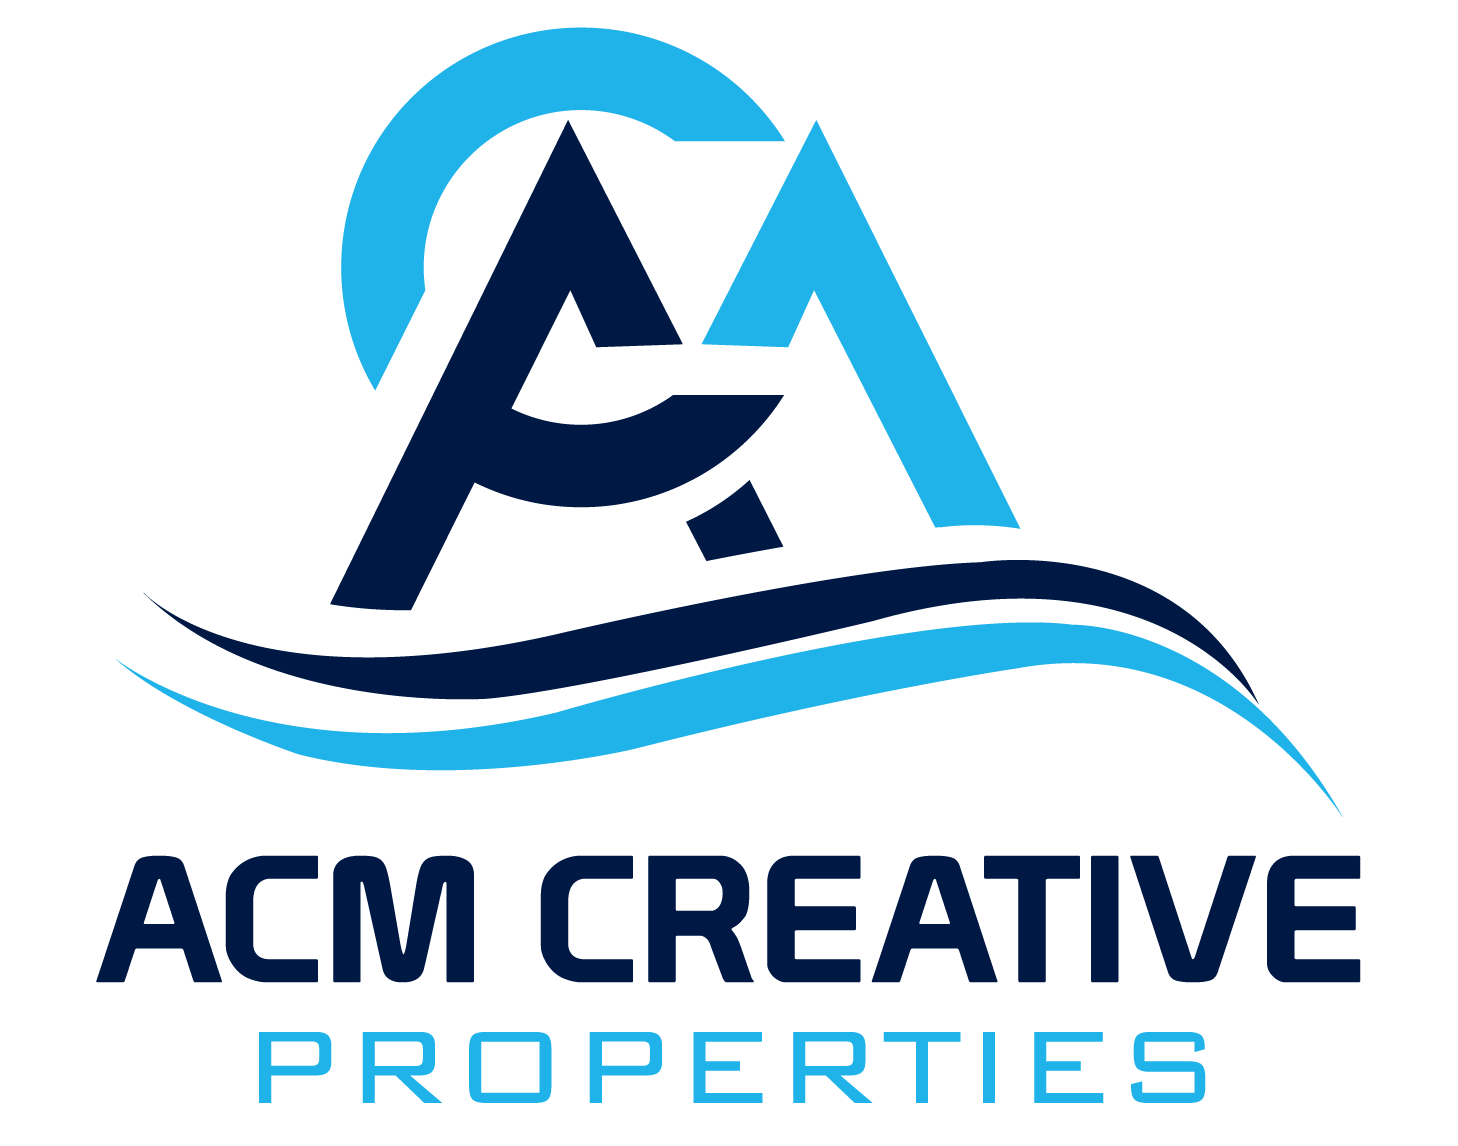 ACM Creative Properties, LLC